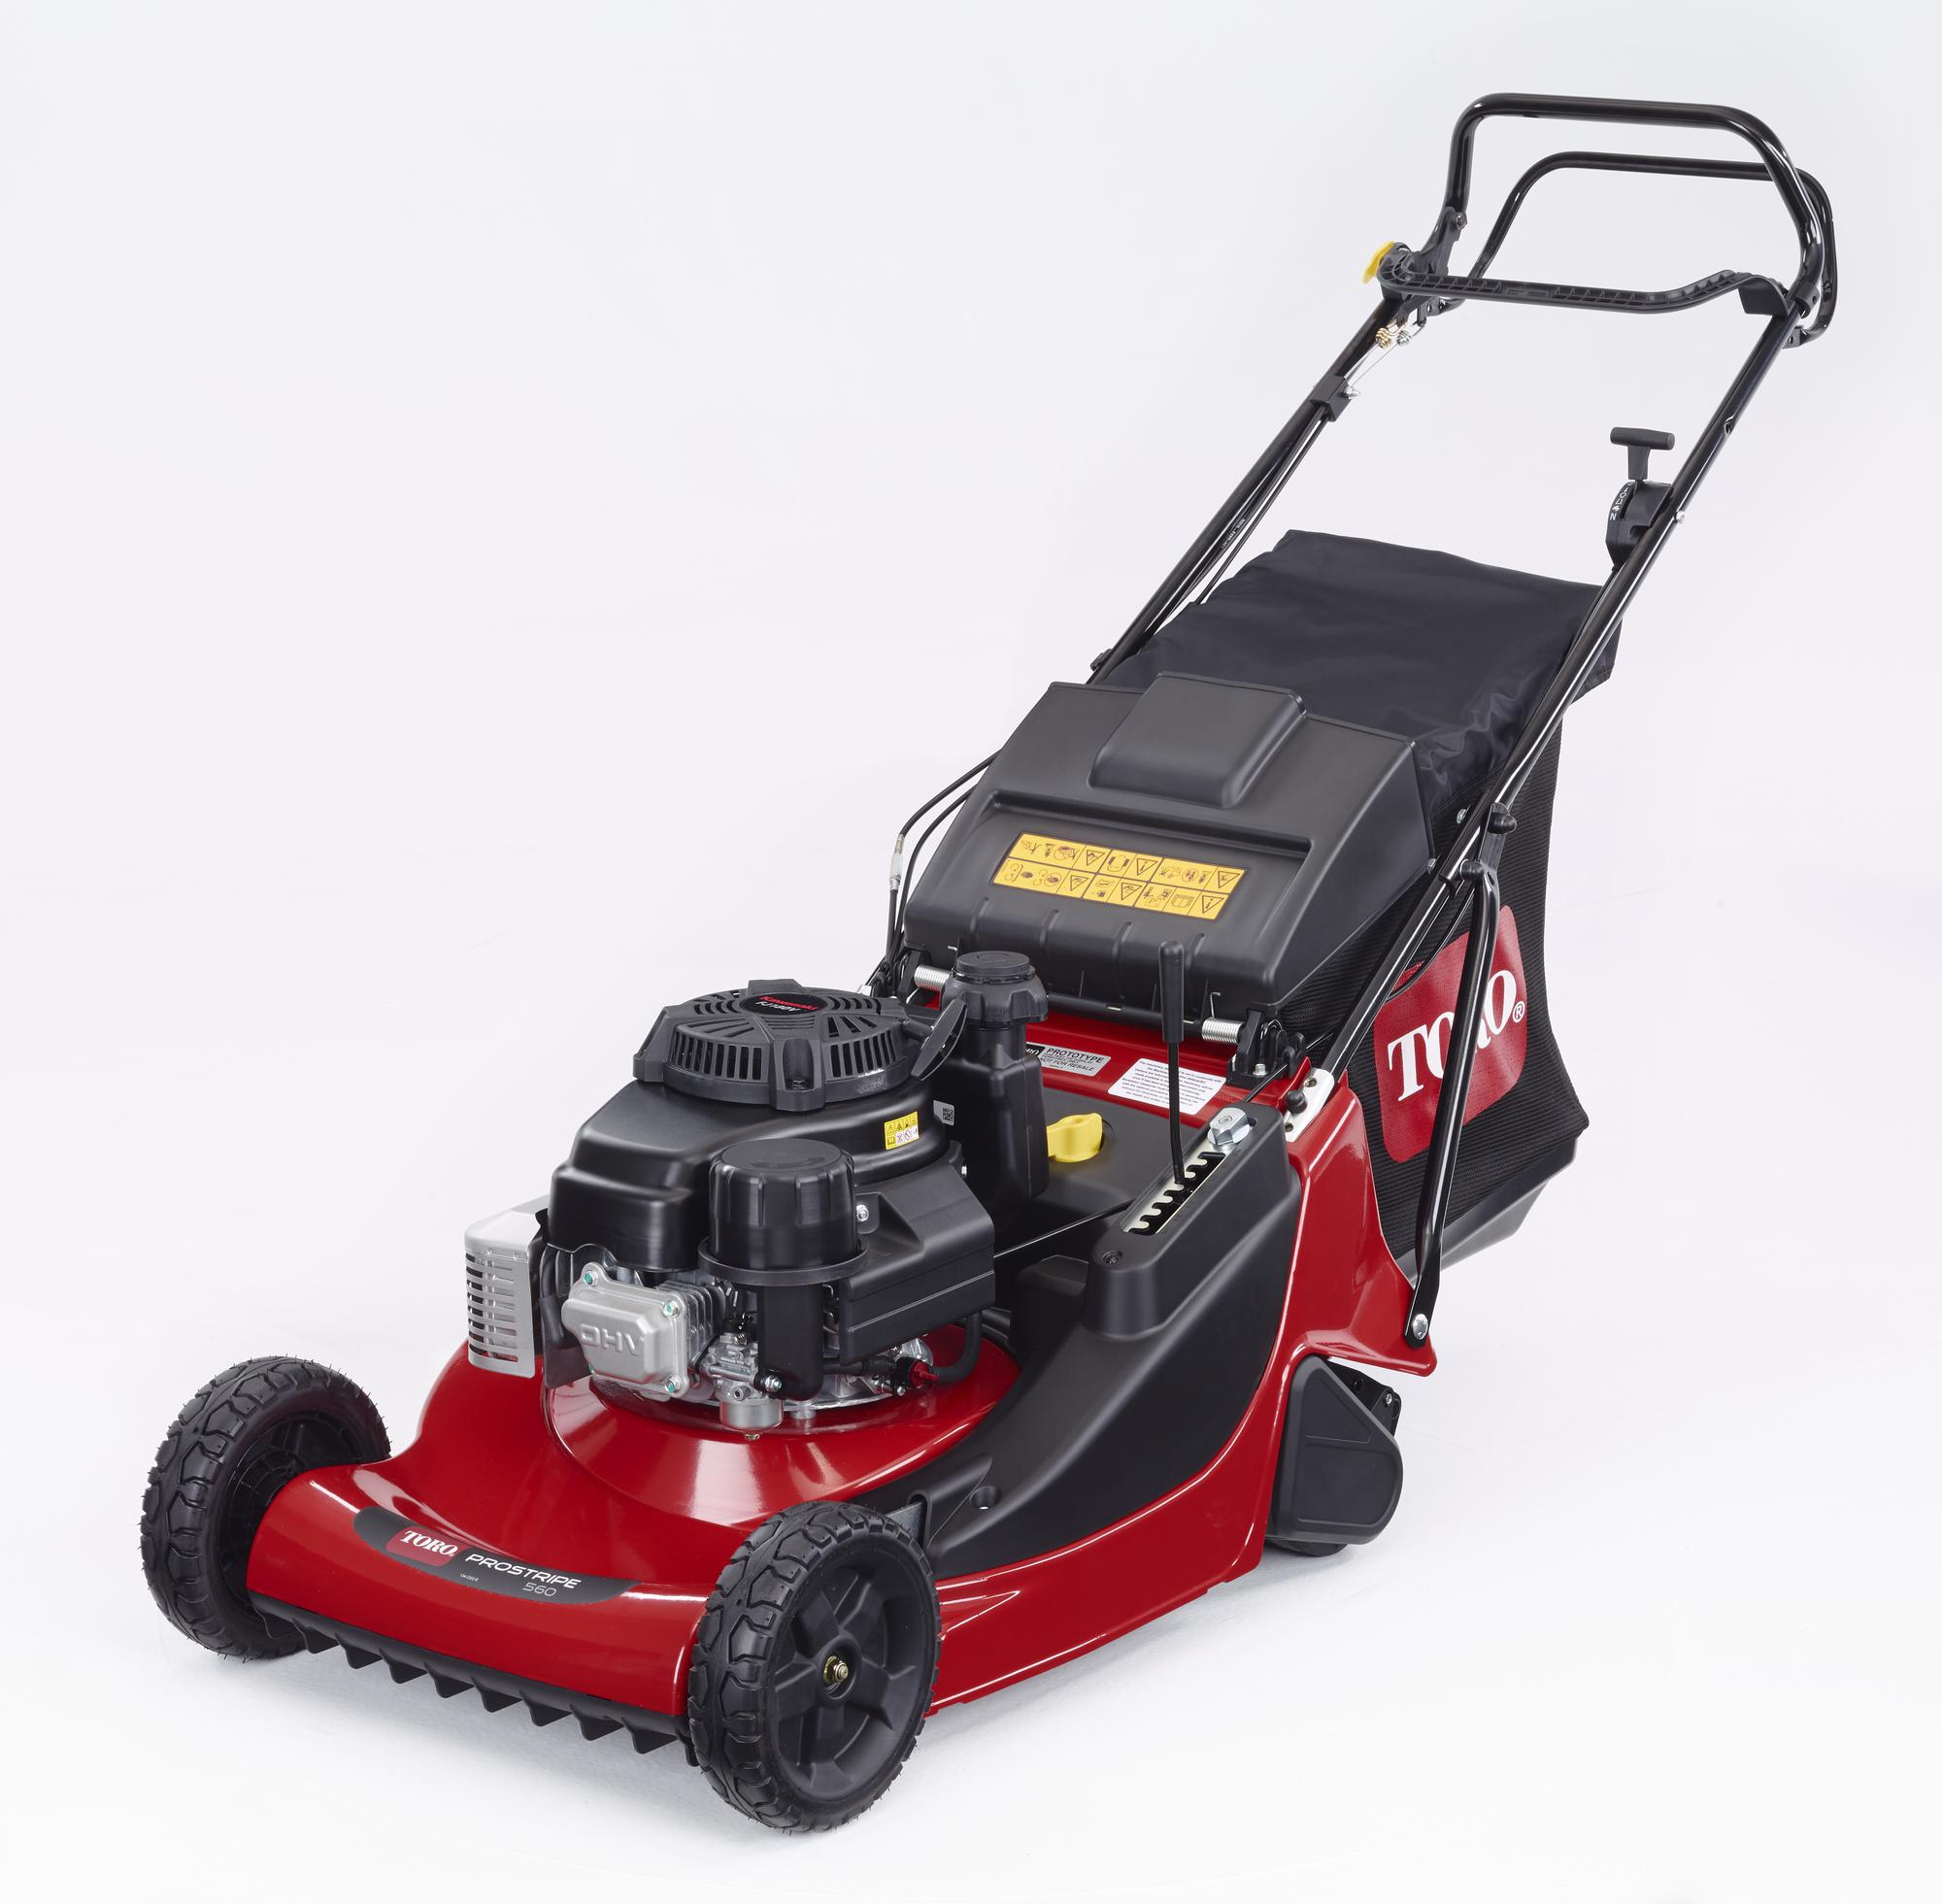 The new Toro ProStripe 560 mower provides both quality of cut and a clean striped finish